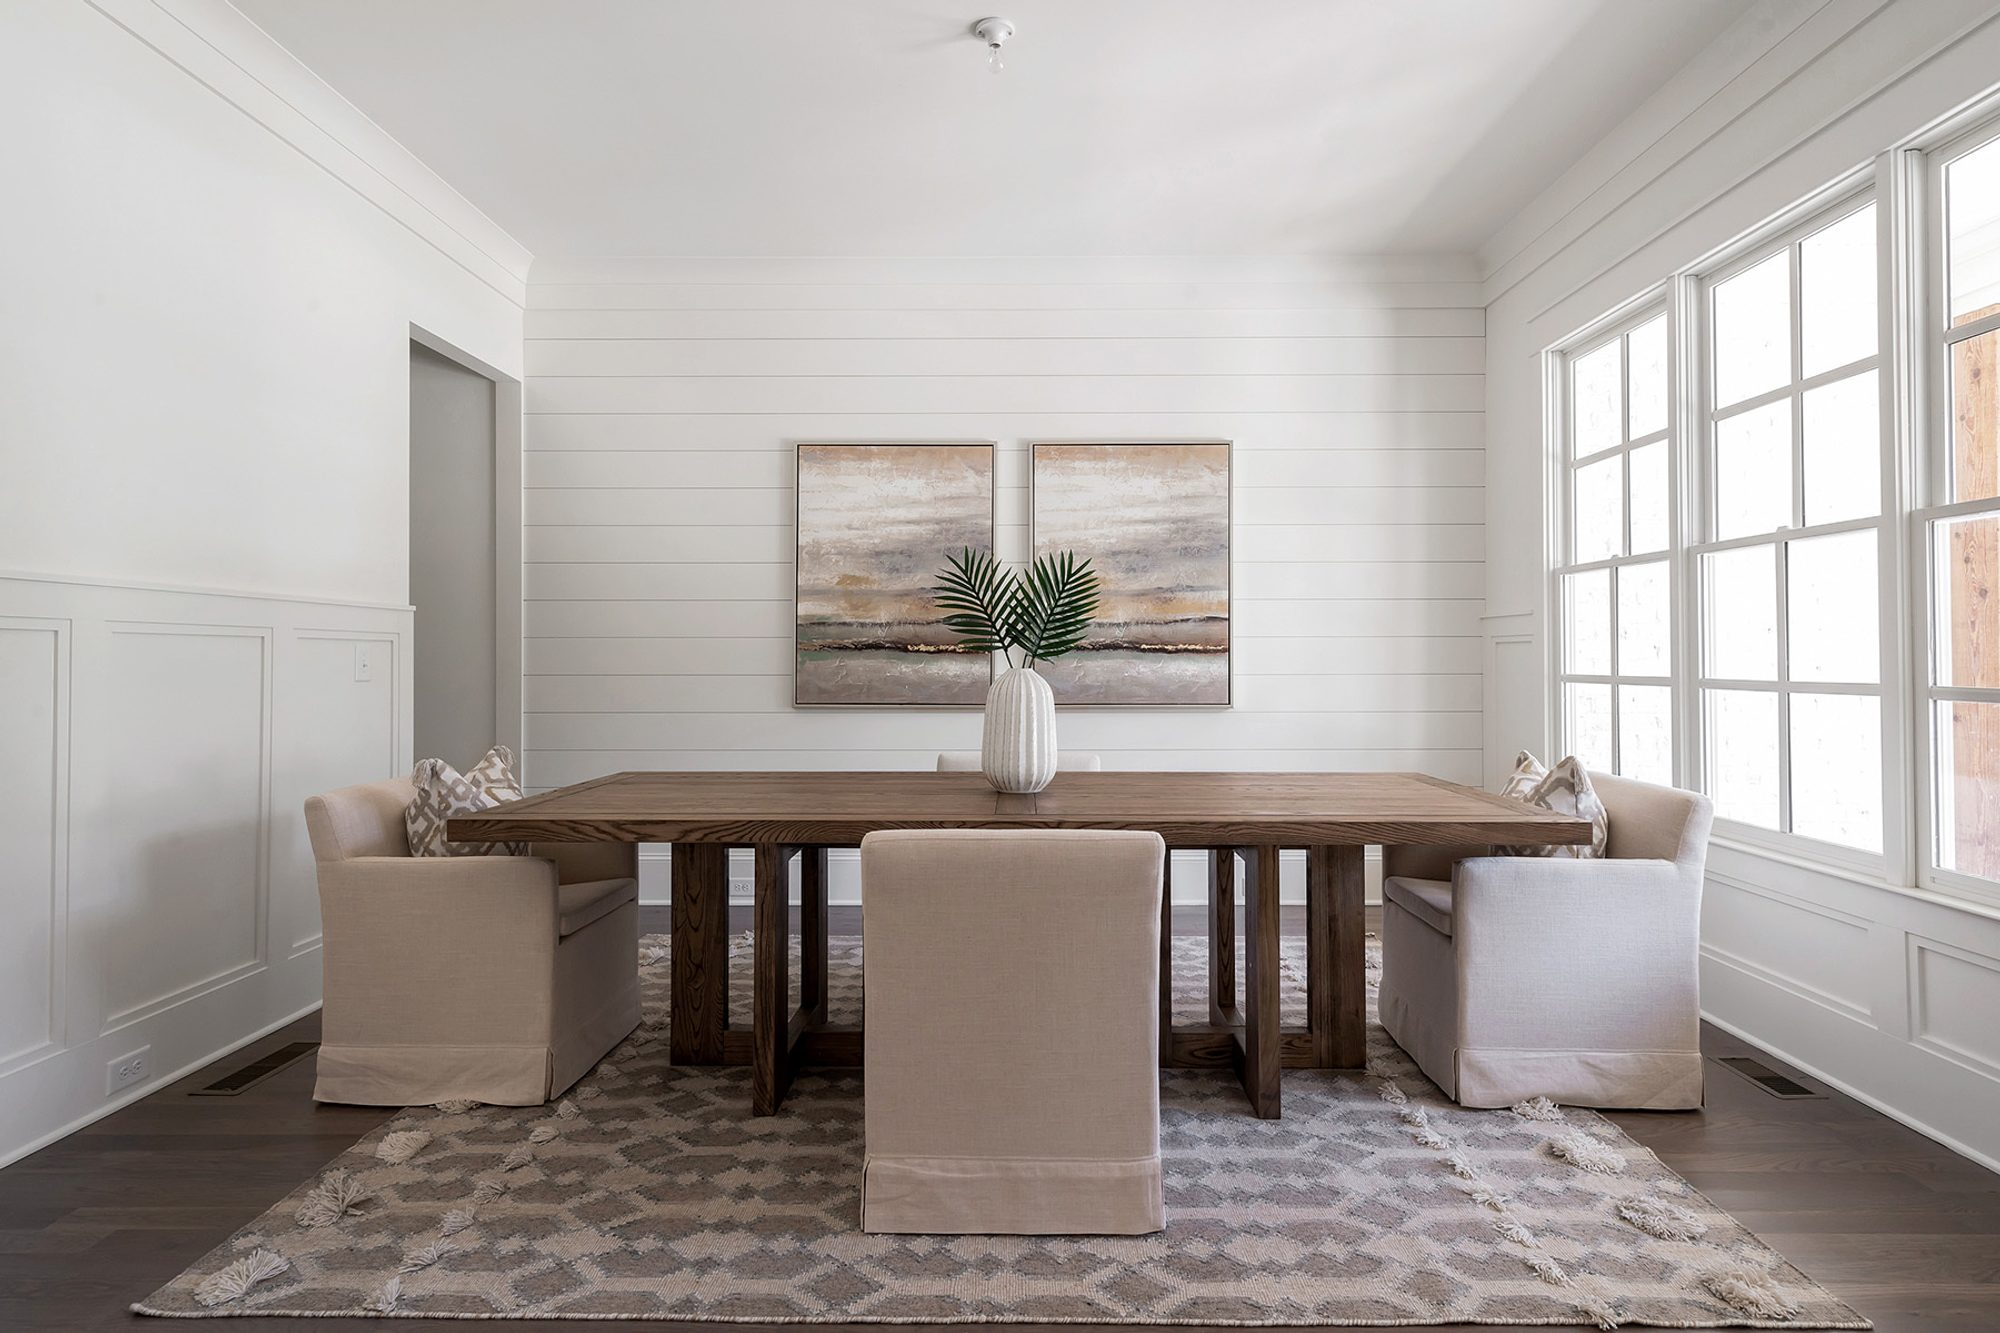 muted gray wood stained shiplap and wainscoting. Modern dining room design.